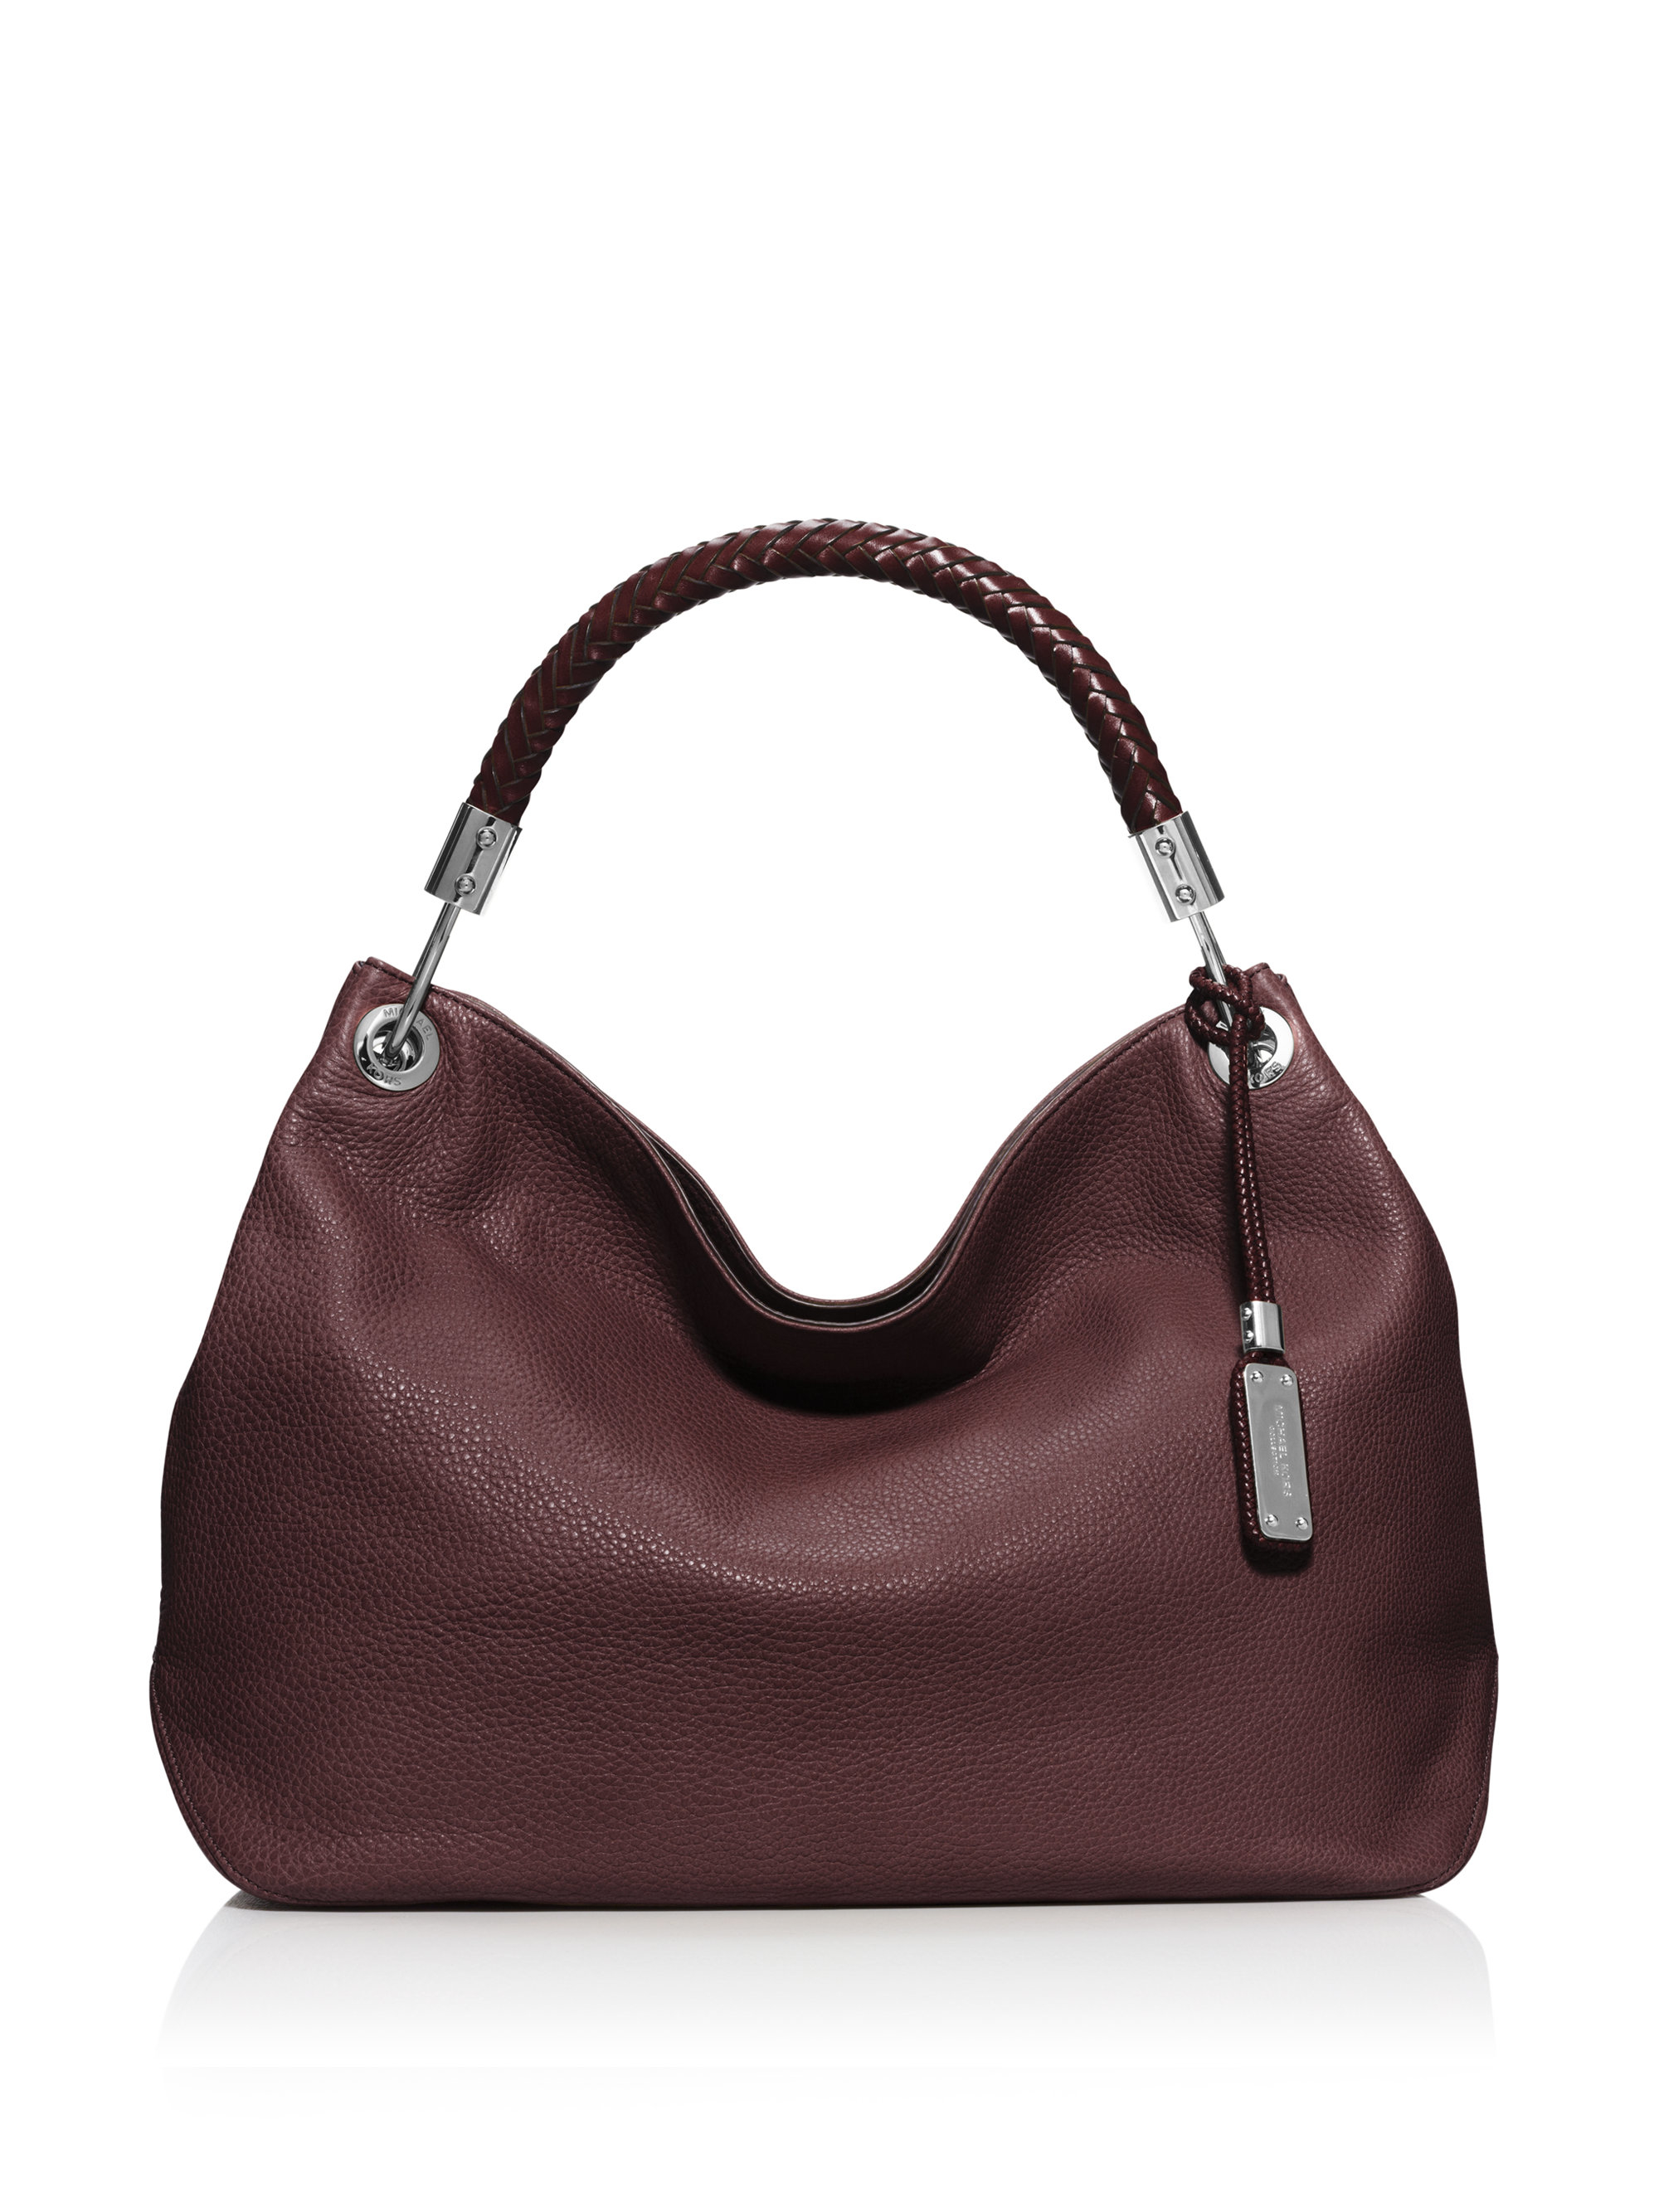 michael kors skorpios medium hobo bag in red bordeaux lyst. Black Bedroom Furniture Sets. Home Design Ideas